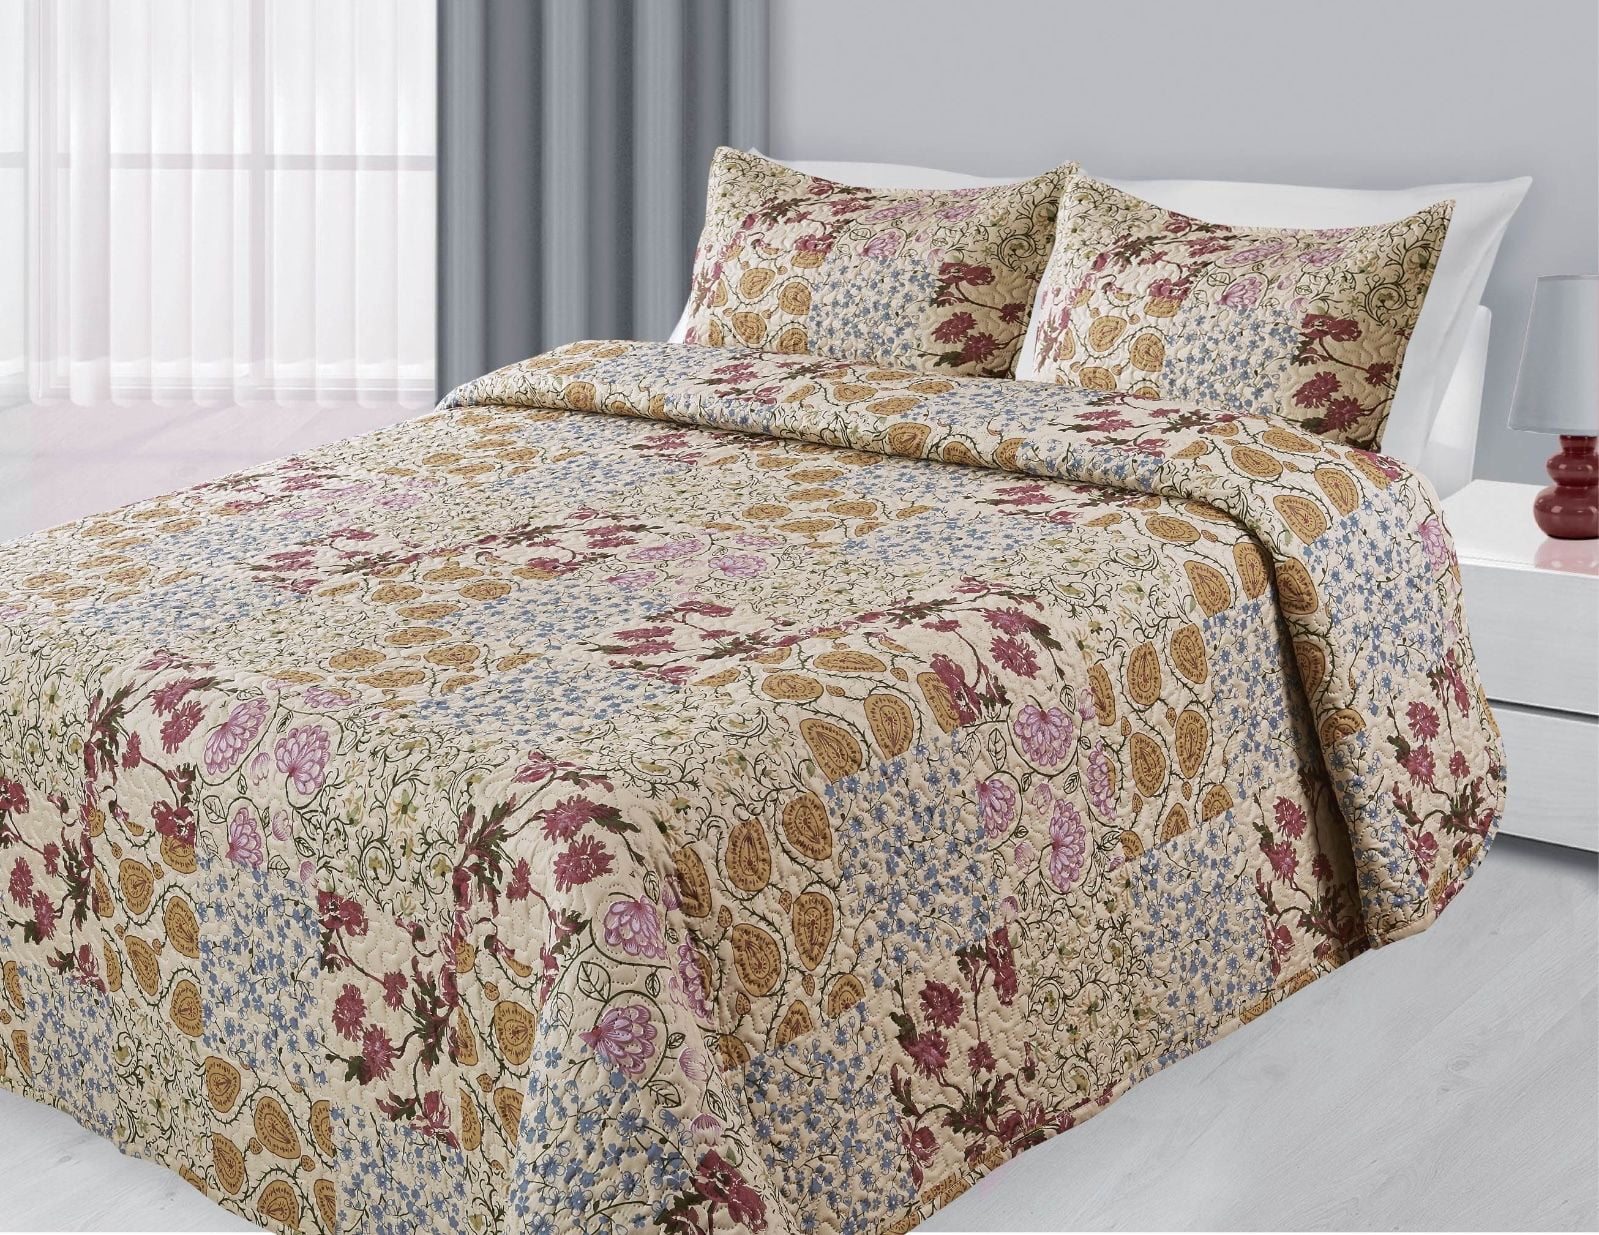 Click here to buy 3-Piece Reversible Quilted Printed Bedspread Coverlet Beige Patchwork Flowers King Size.